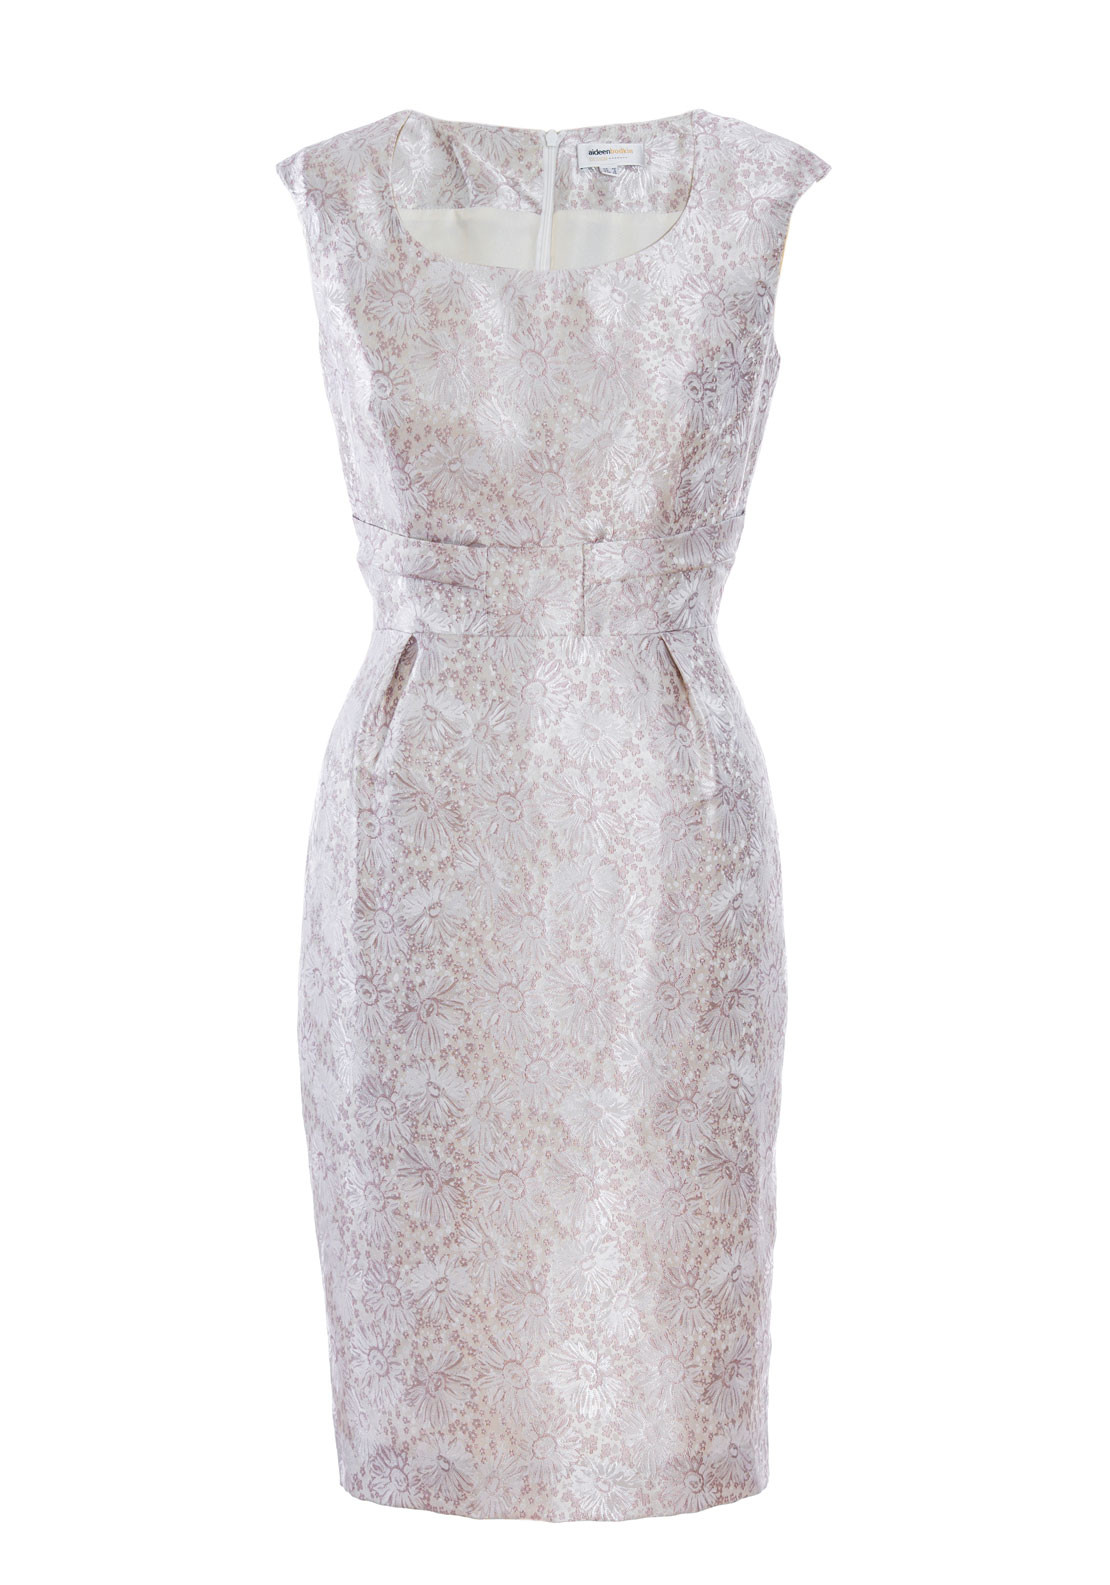 Aideen Bodkin Portea Blush Pink Metallic Floral Detail Dress